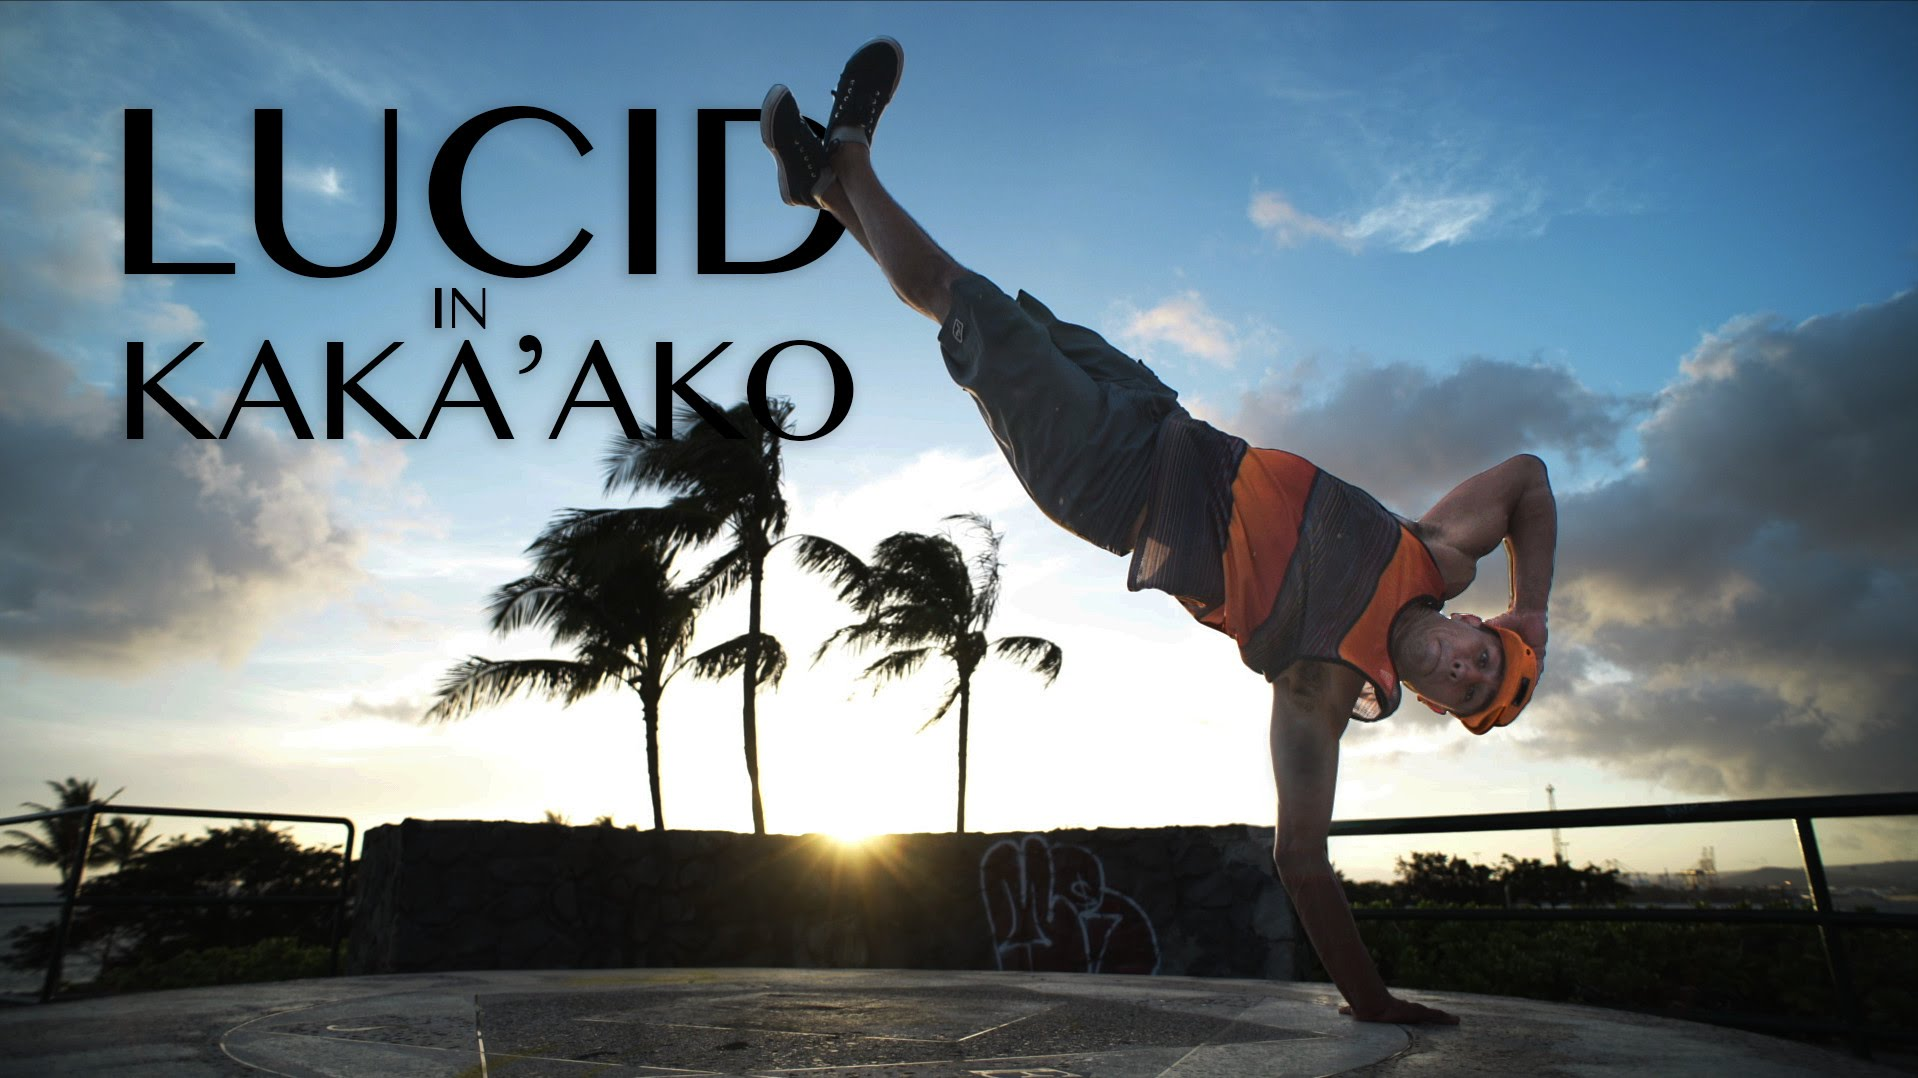 bboy-lucid-in-hawaii-for-udef-shadow-styles-yakfilms-video